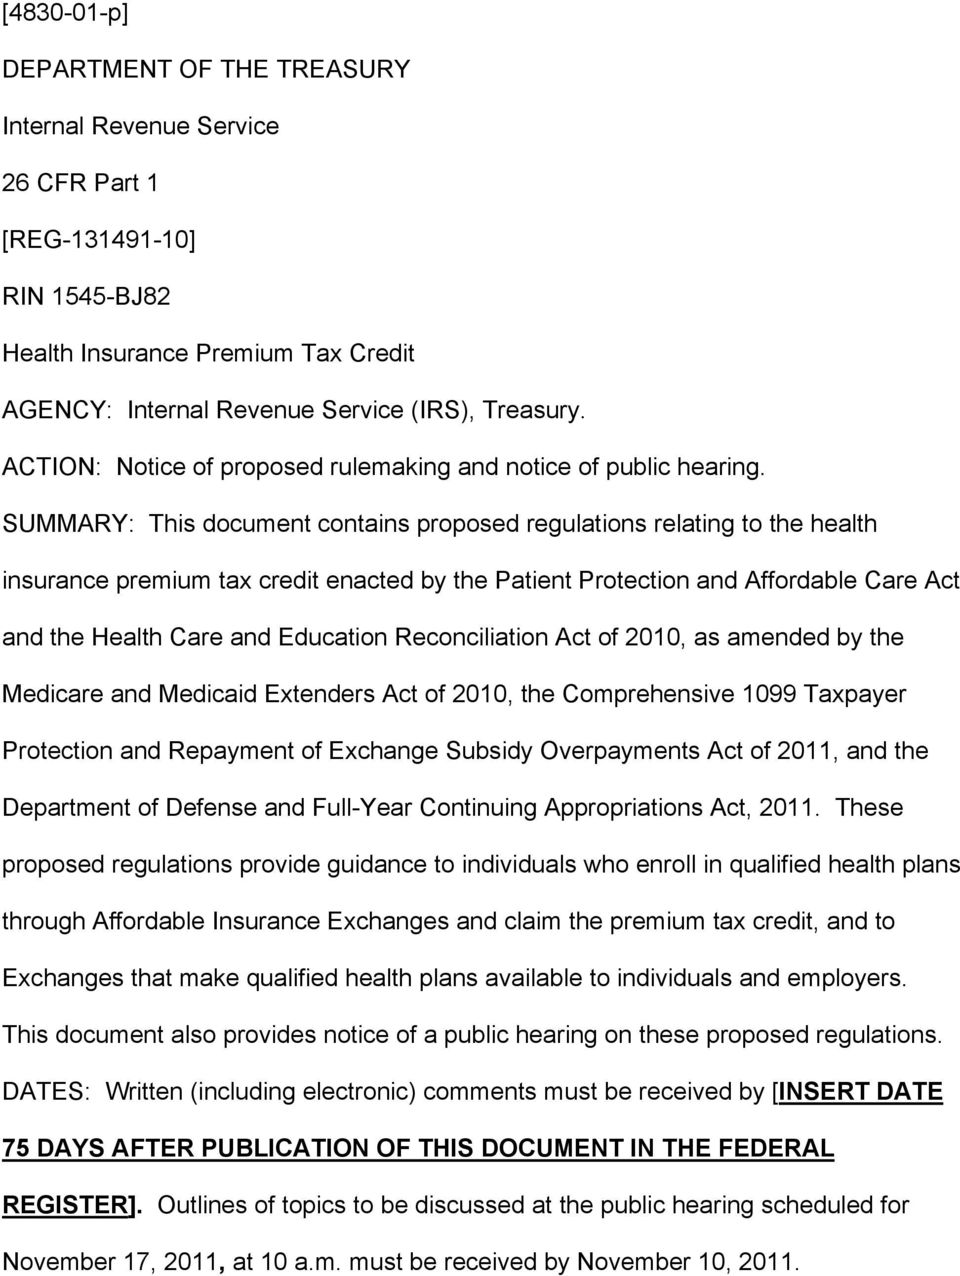 SUMMARY: This document contains proposed regulations relating to the health insurance premium tax credit enacted by the Patient Protection and Affordable Care Act and the Health Care and Education